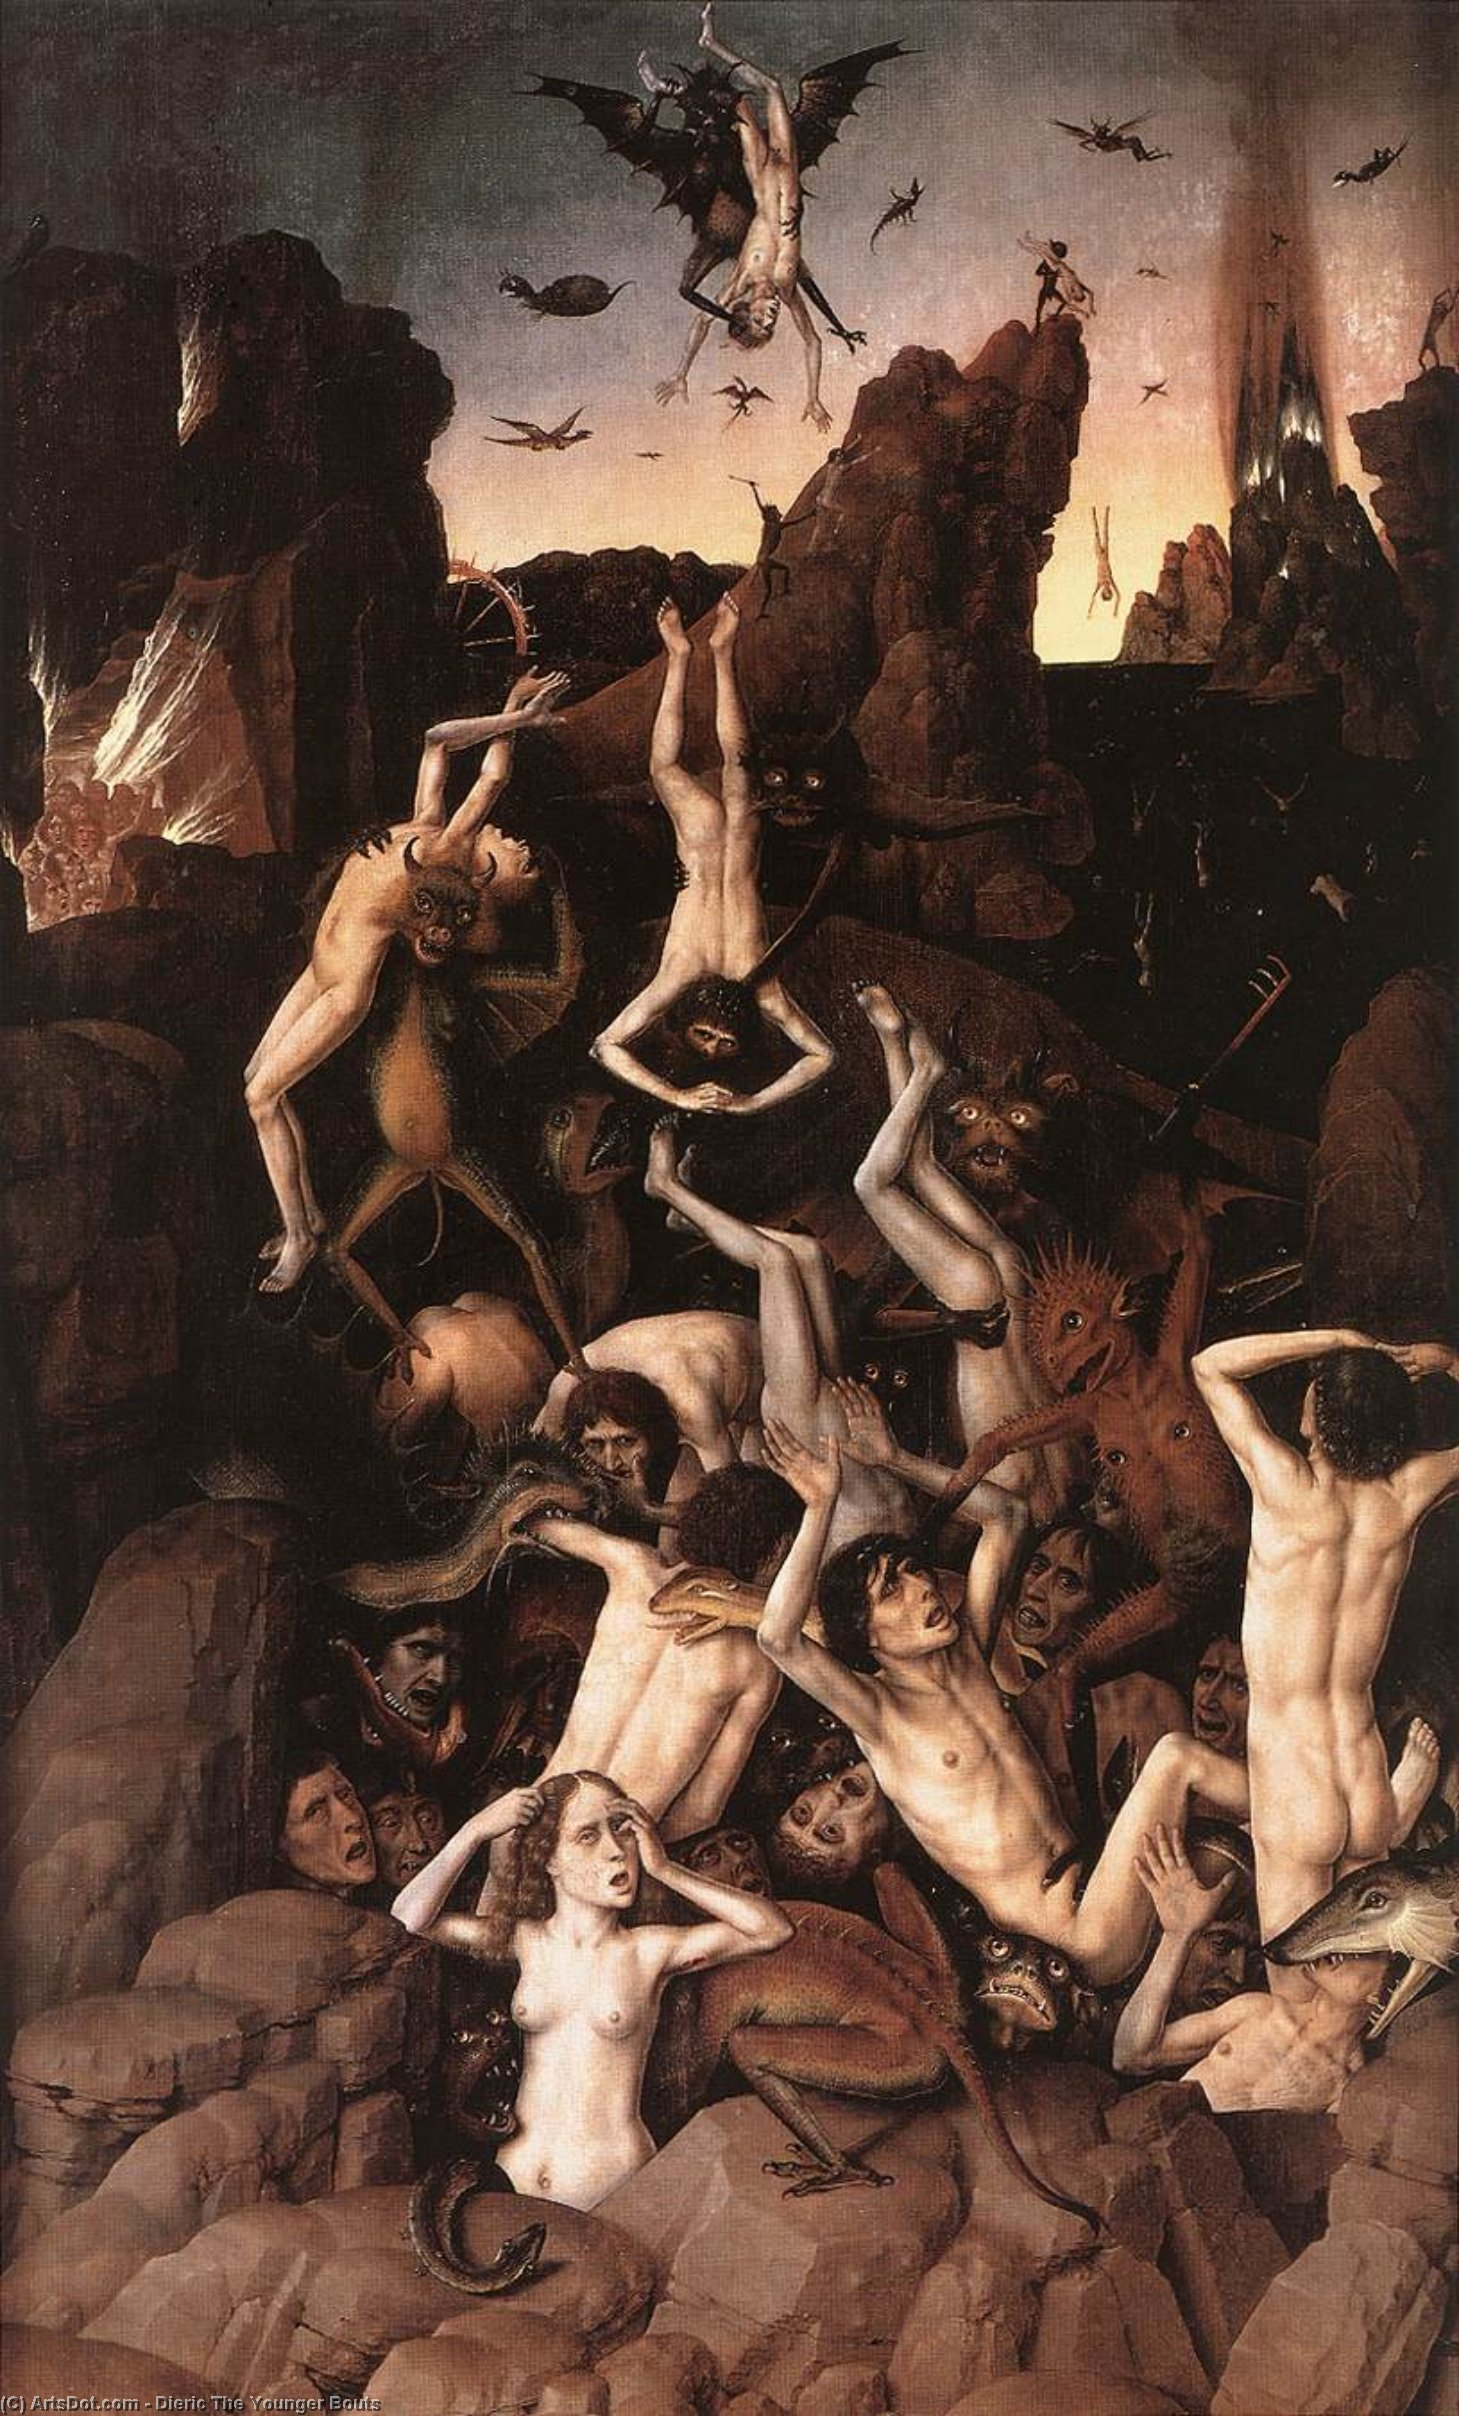 Hell by Dieric The Younger Bouts (1448-1491, Belgium)